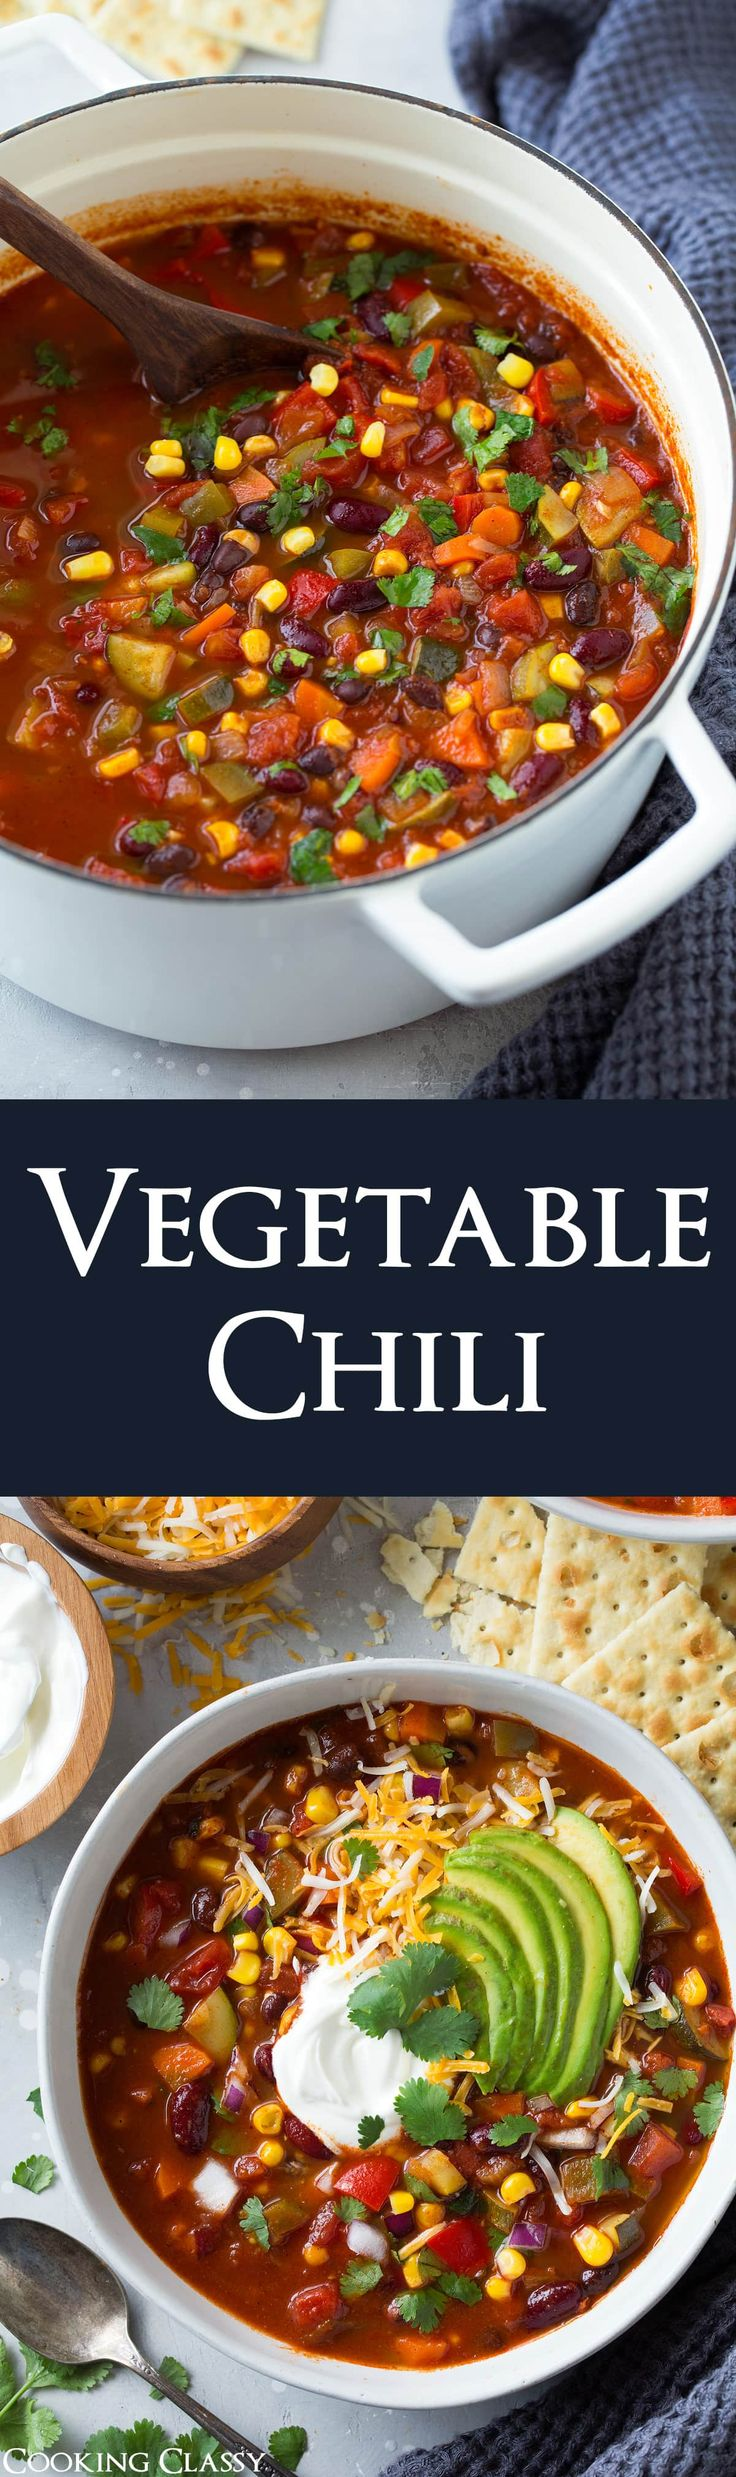 Vegetable Chili - this is jam packed with nutritious veggies and it's so good no one will even miss the meat! It's perfectly hearty and healthy and it's a dinner you can feel great about eating! I'd even say it's a recipe worthy of the recipe book. #chili #vegetables #vegetablechili #soup #healthyrecipe #dinner